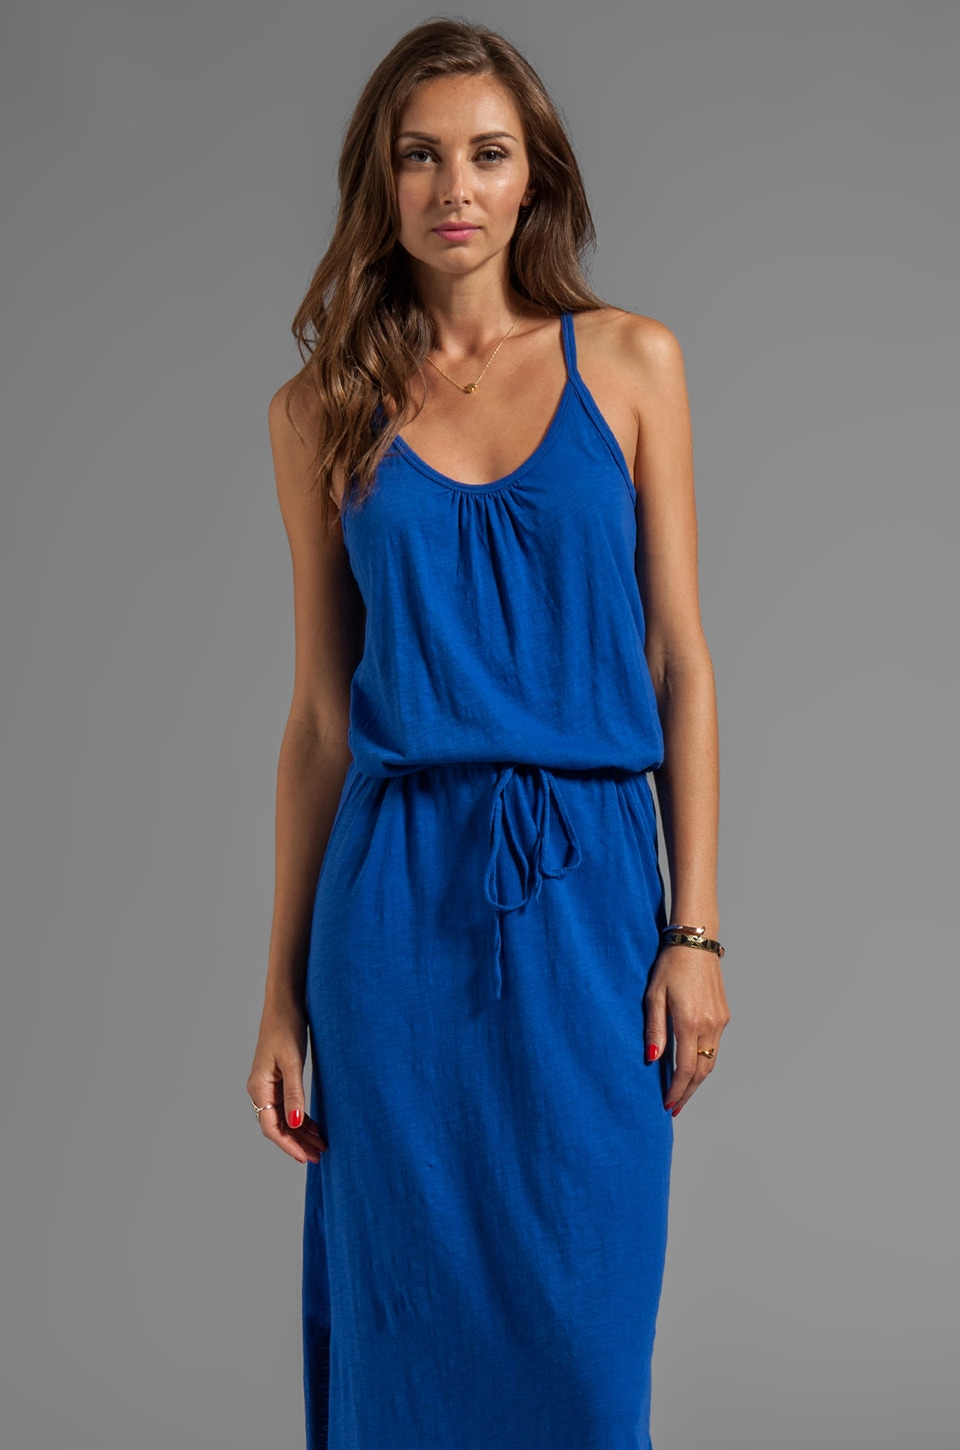 C&C California Slub Jersey Tank Maxi Dress in Mirage